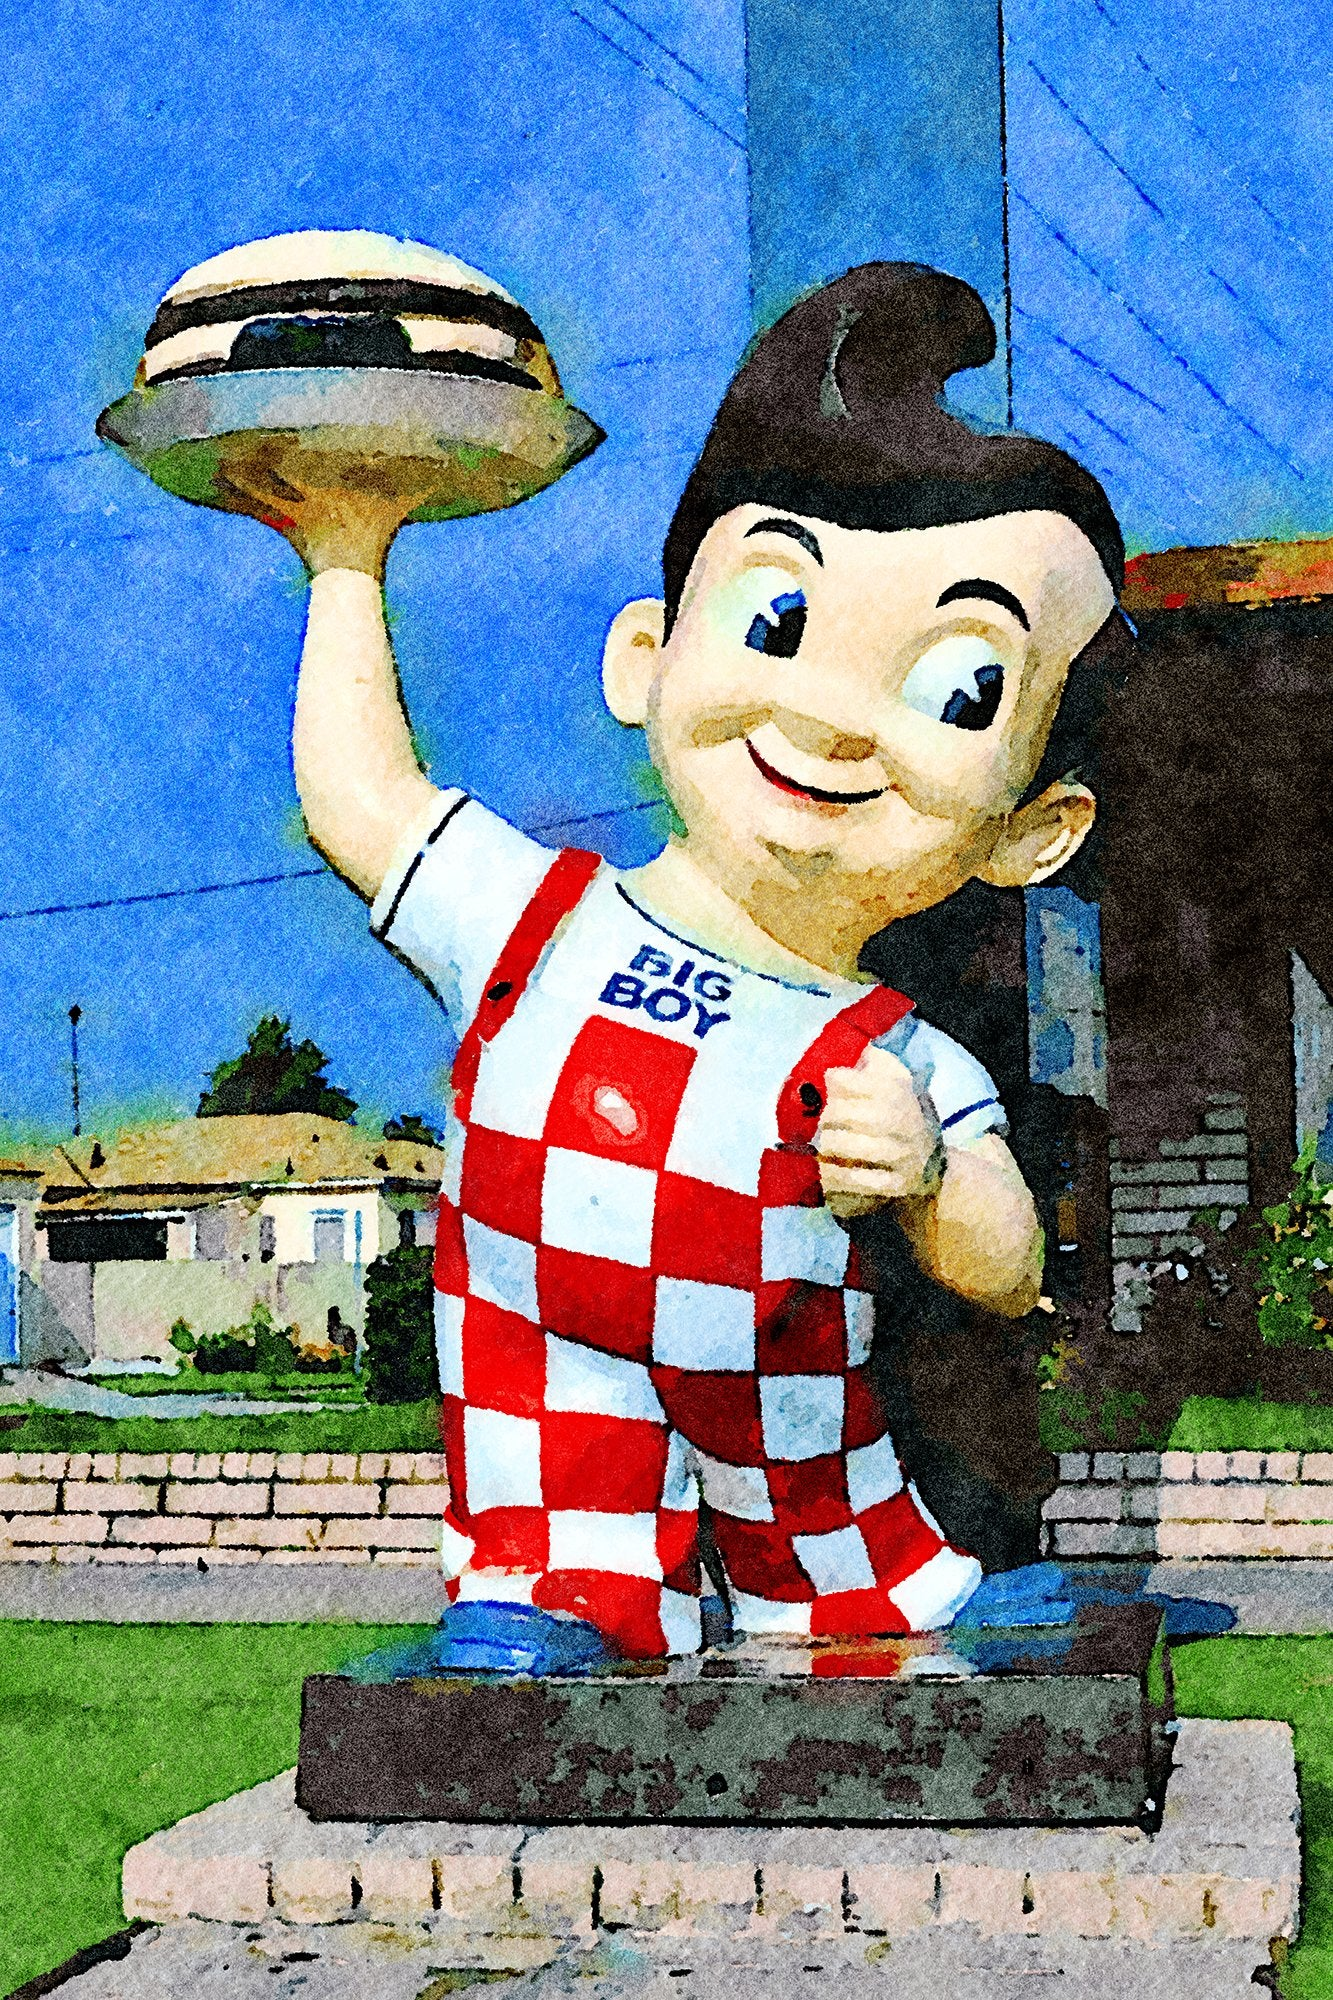 Bob's Big Boy Statue Sign, La Cienega Boulevard, Los Angeles, California, Reworked, Series 1